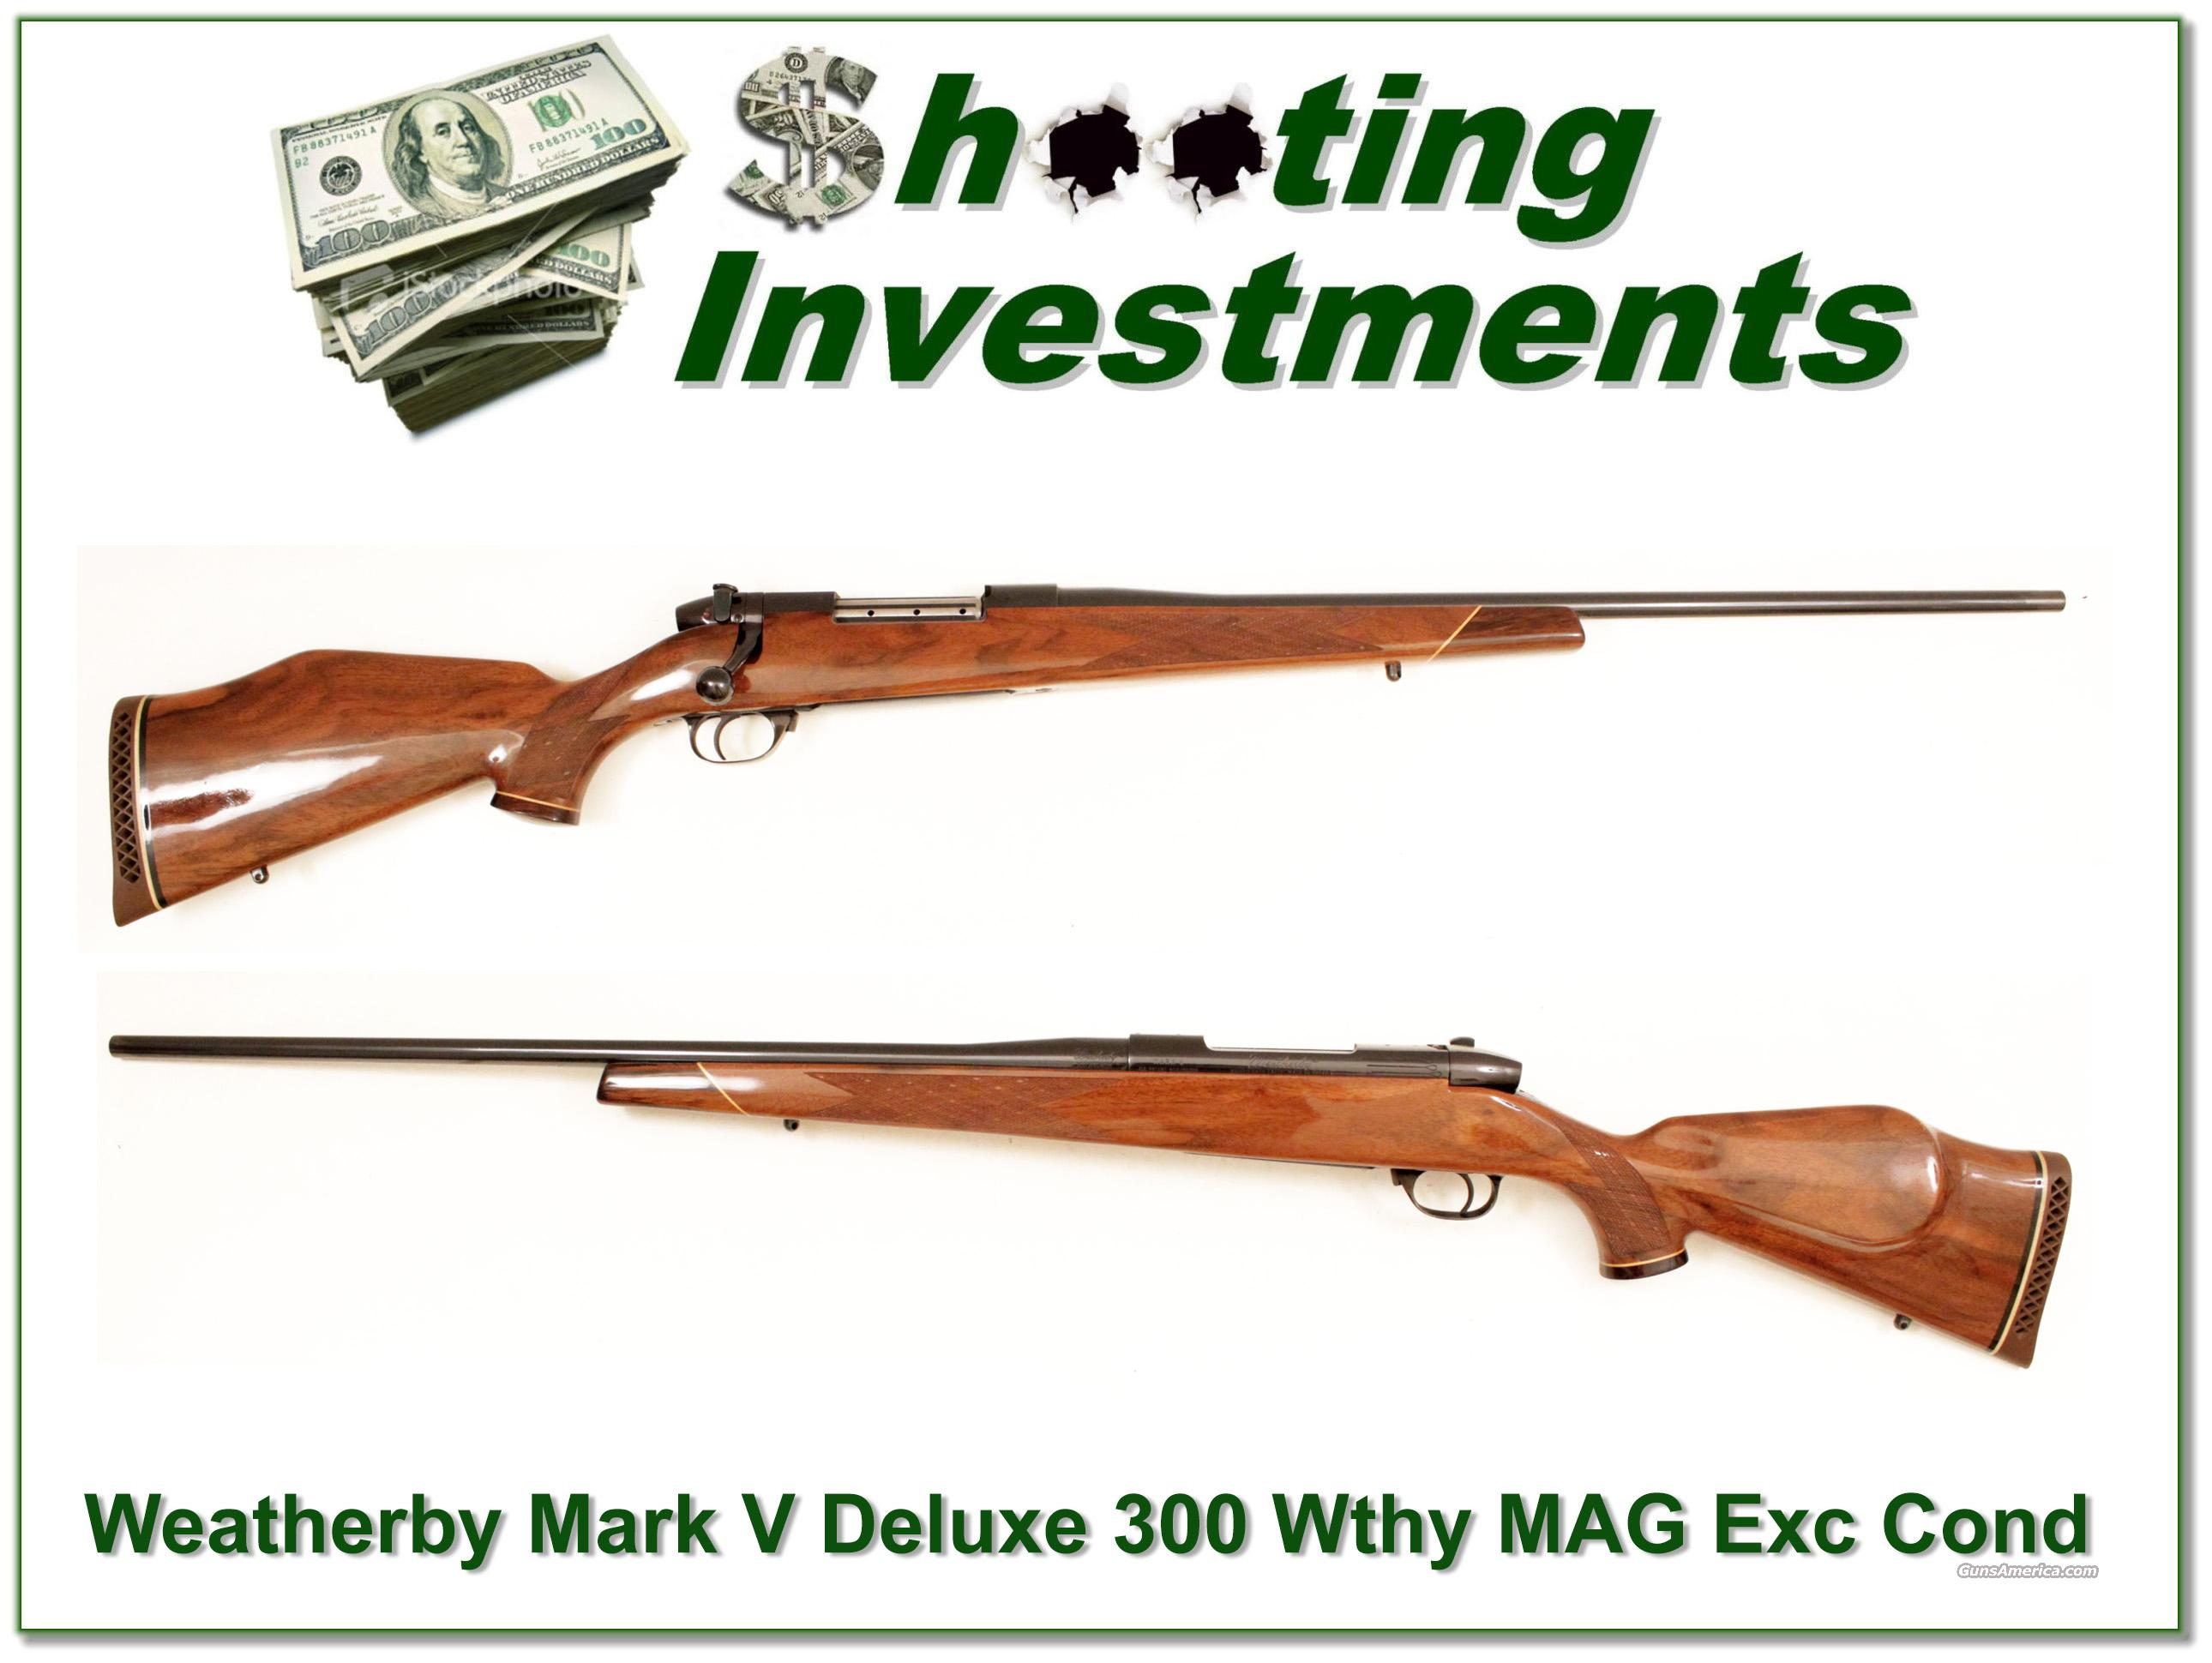 Weatherby Mark V Deluxe 300 near new  Guns > Rifles > Weatherby Rifles > Sporting